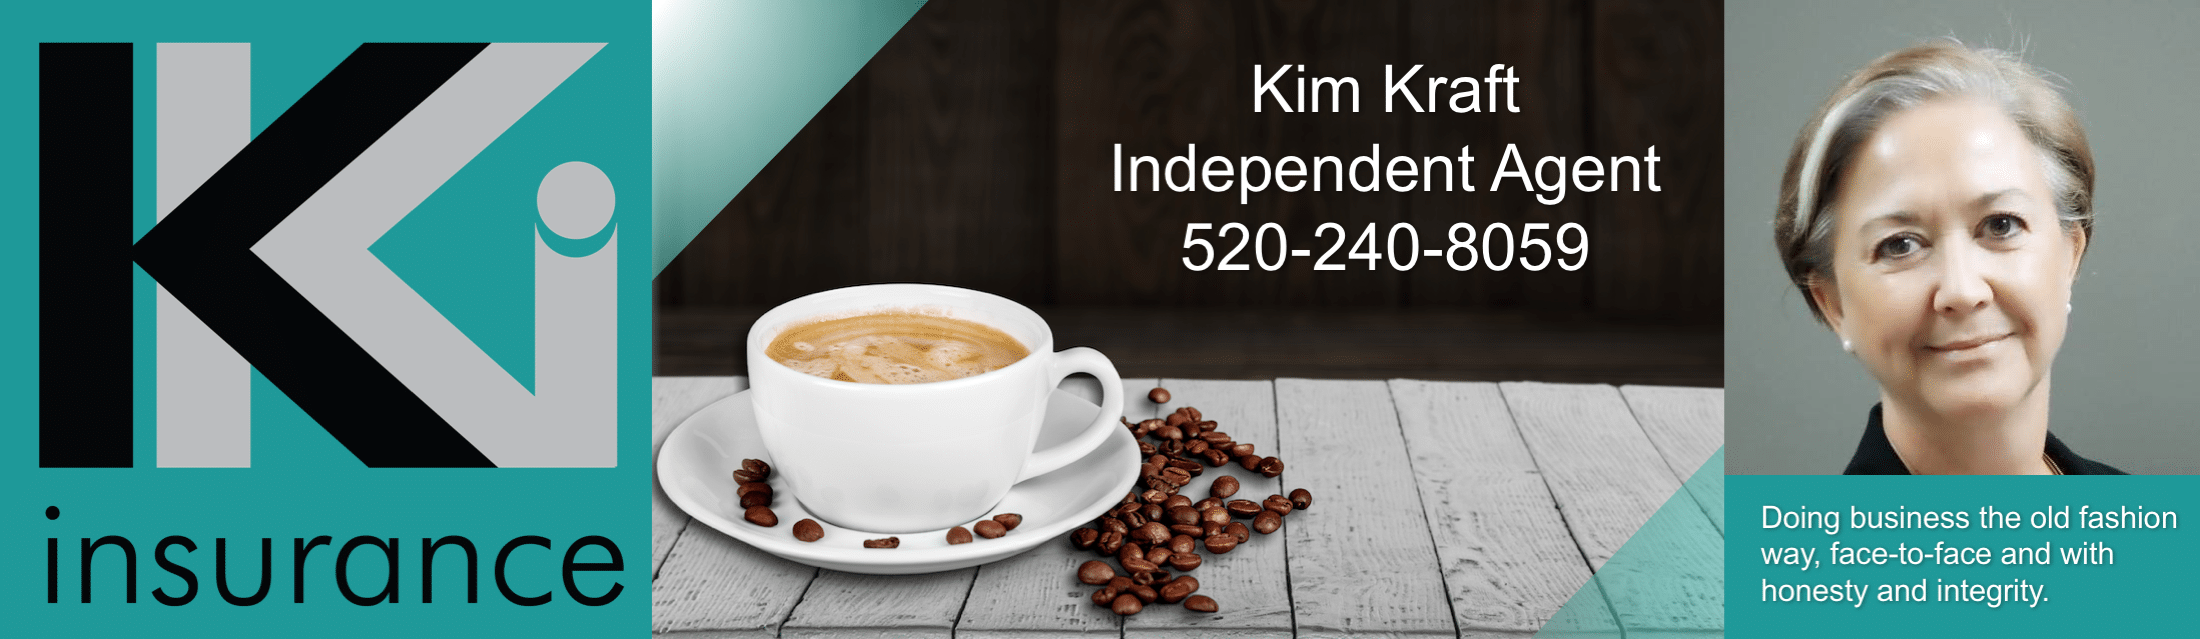 http://kimkraftinsurance.com/wp-content/uploads/2017/02/Health-Insurance-Arizona-Health-Insurance-Agent-Arizona-Kim-Kraft-Insurance-1.png